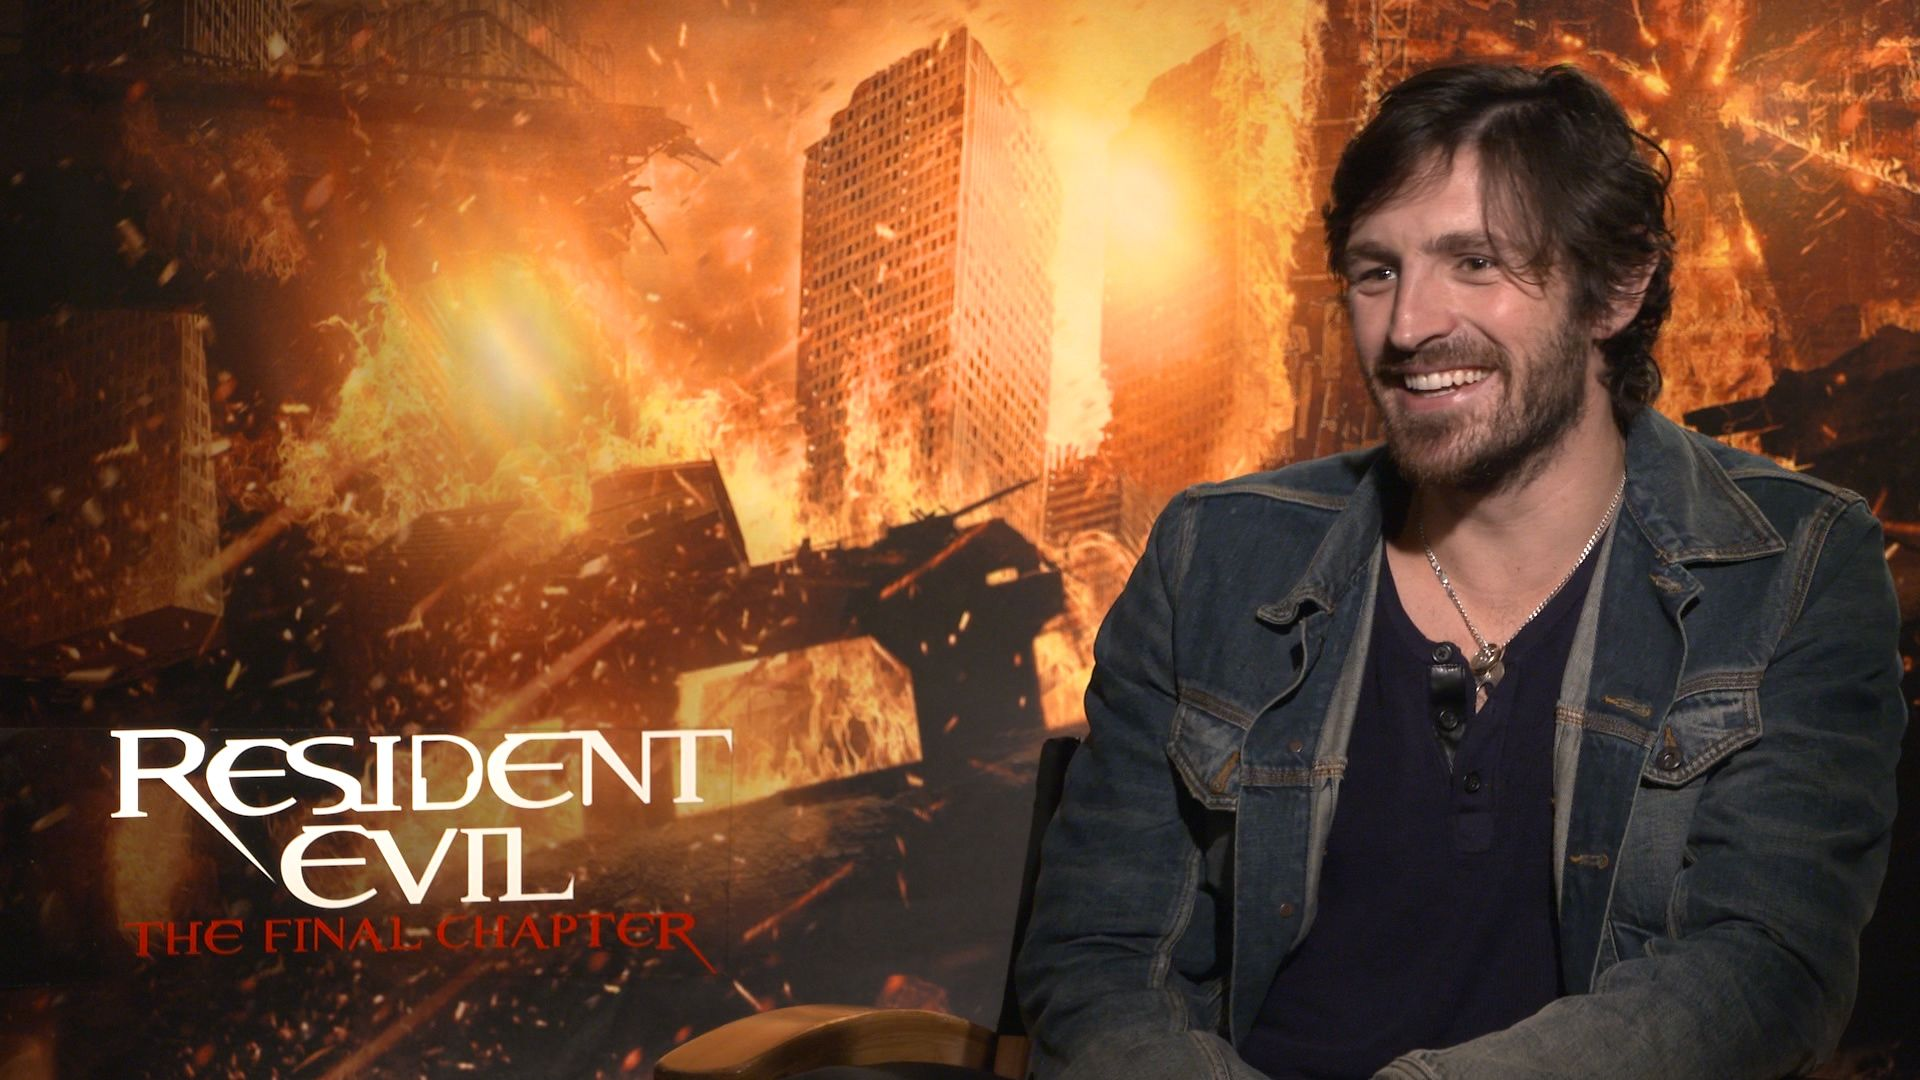 Resident Evil The Final Chapter Interview: Eoin Macken On Resident Evil 6 And Memorable Moments